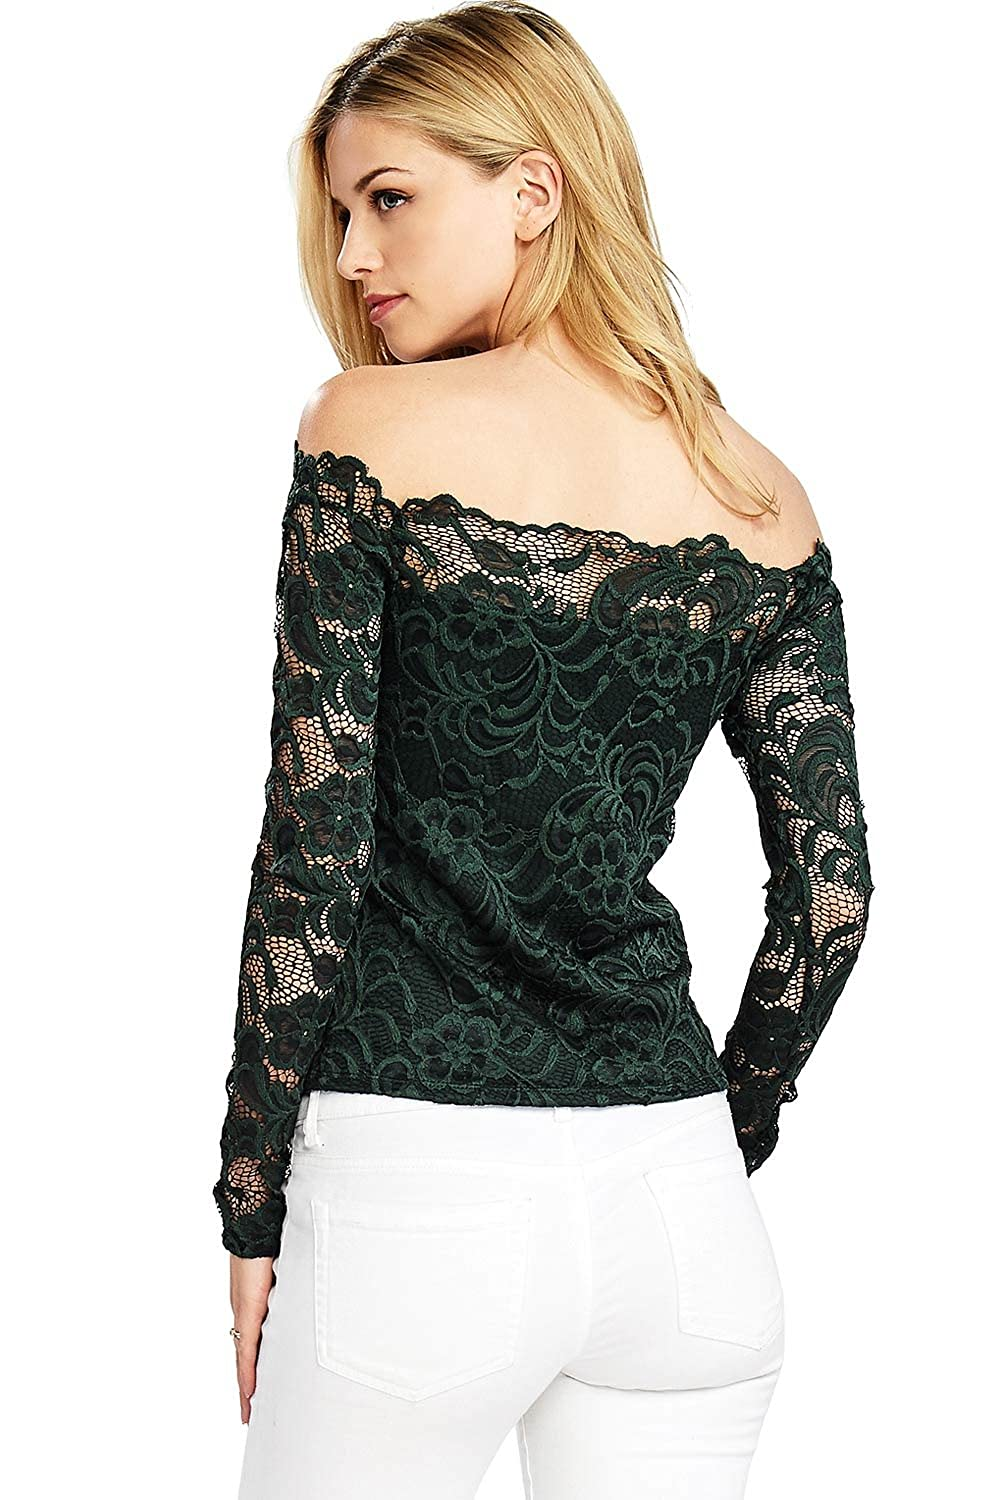 47d9f1774e38c Ambiance Women s Crop Lace Off-Shoulder Long Sleeve Top at Amazon Women s  Clothing store